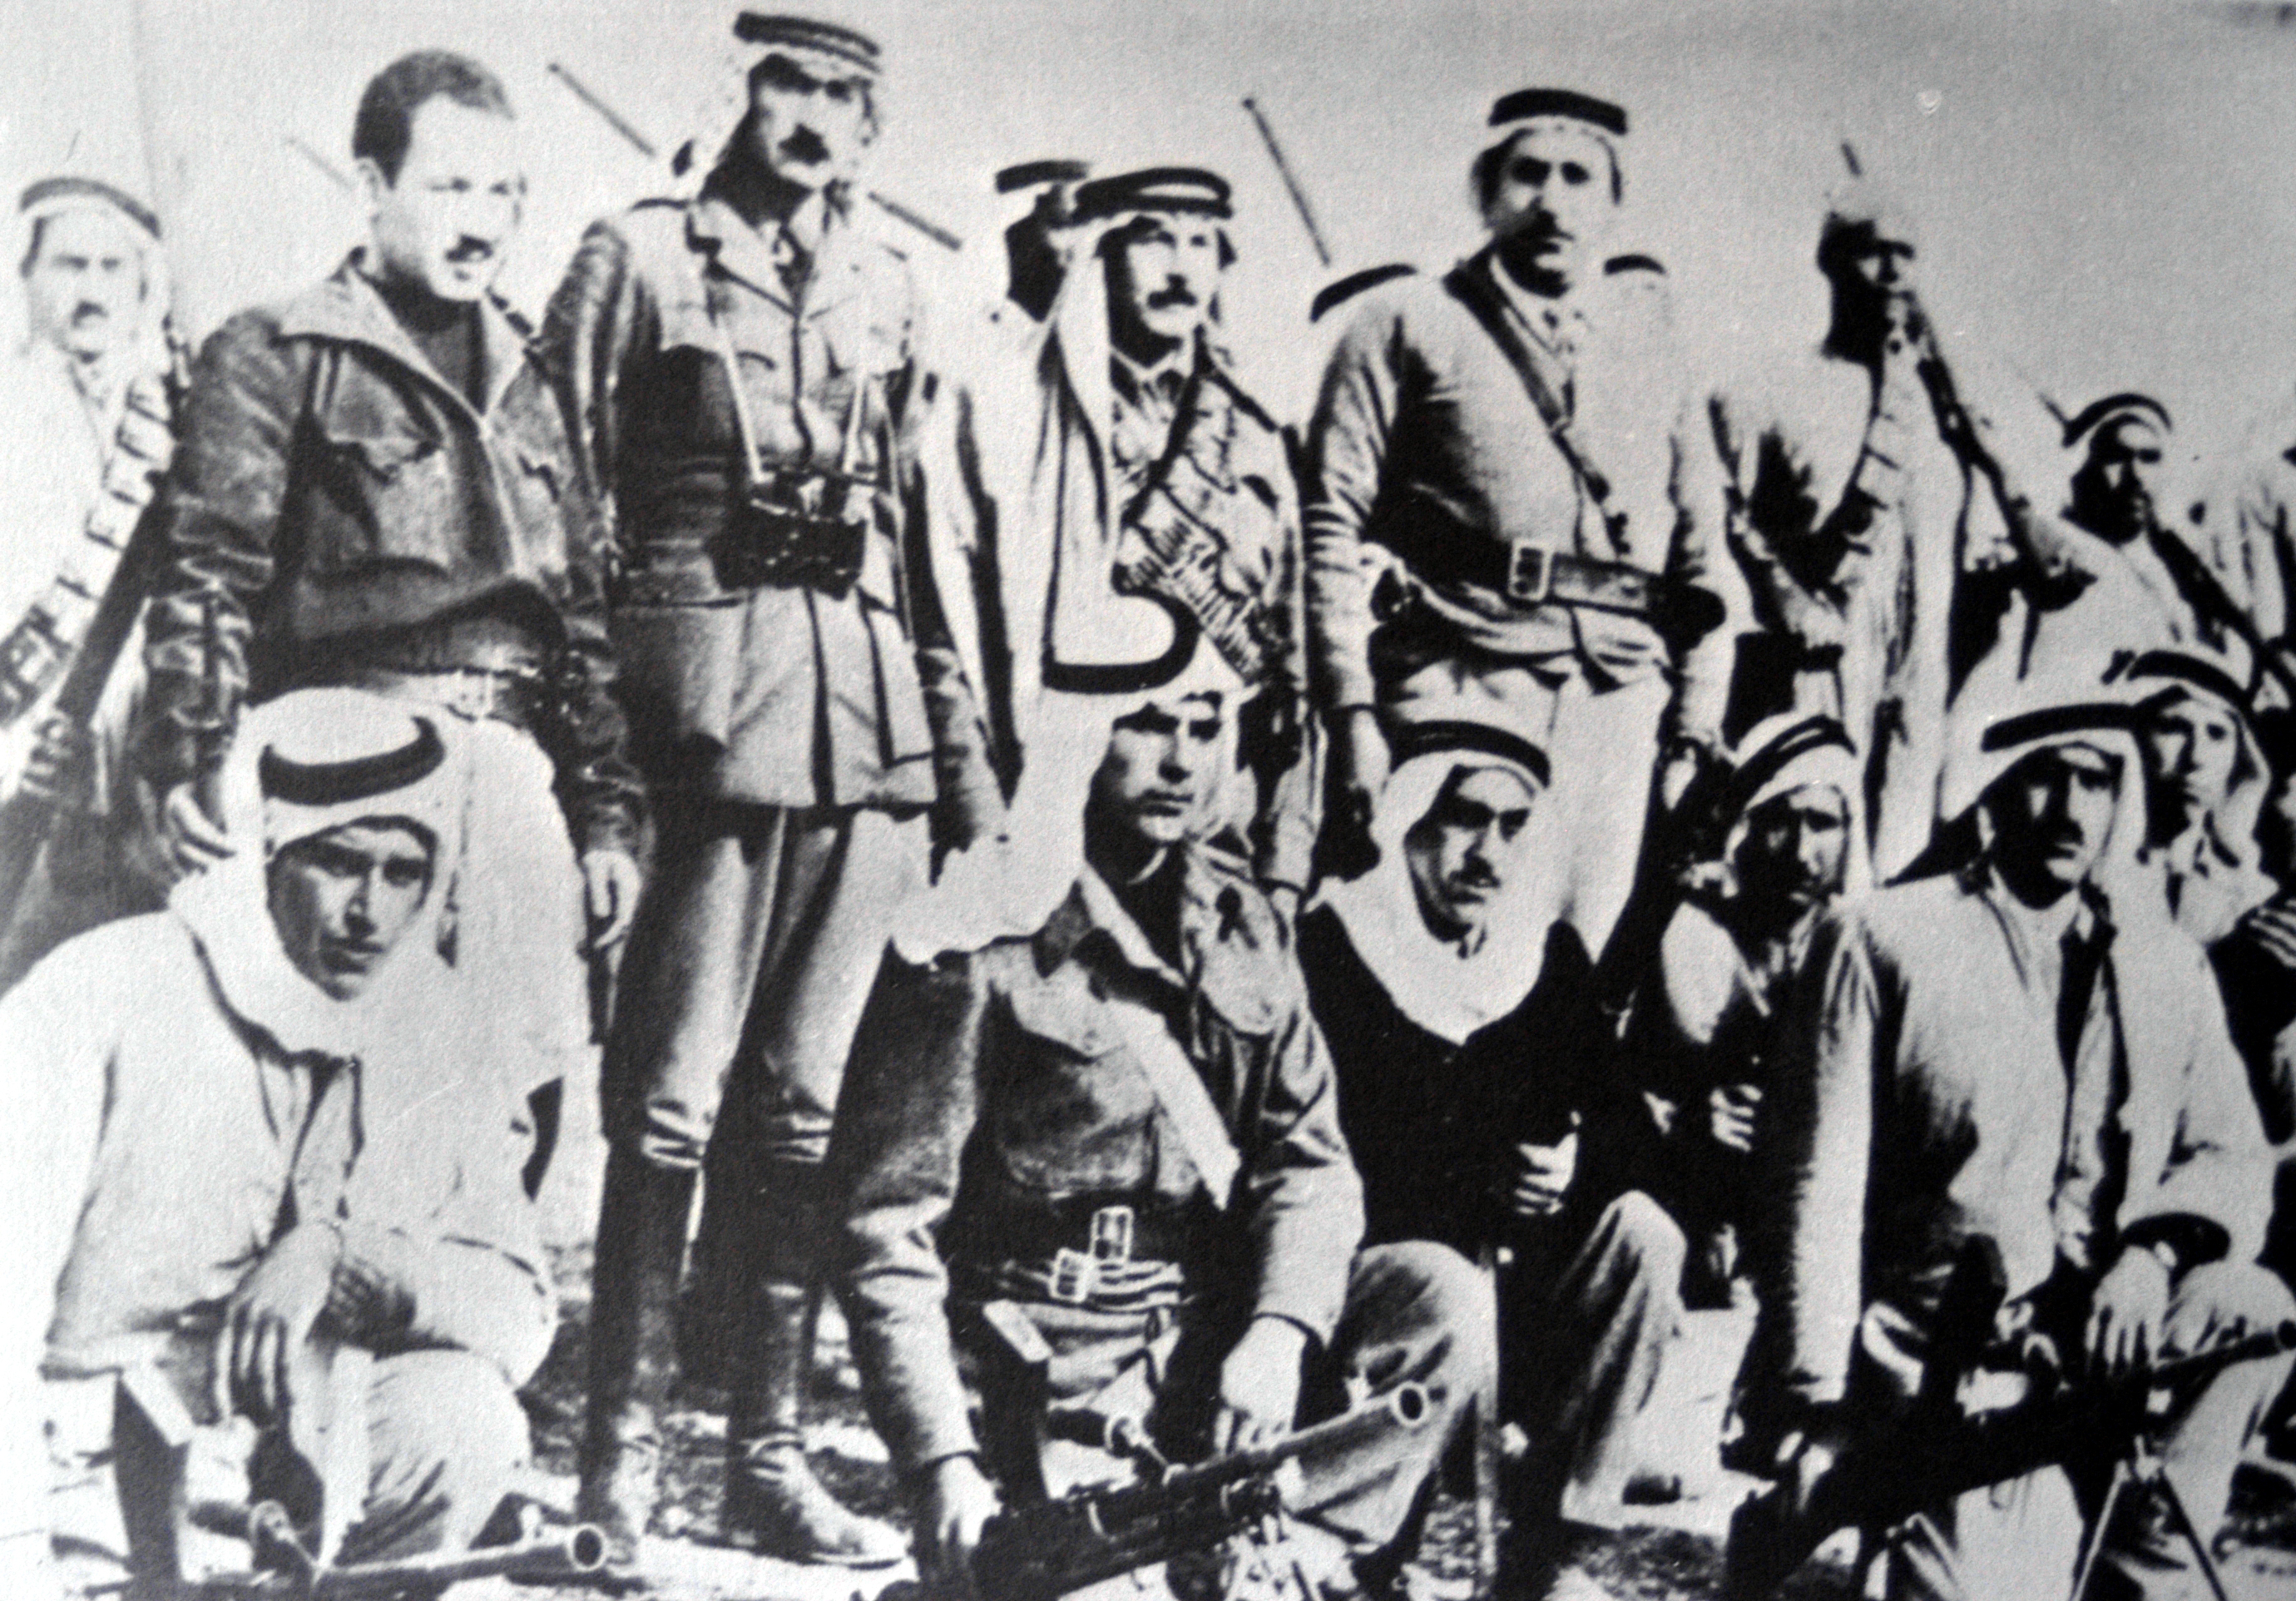 an examination of the four major arab israeli wars Historical timeline: 1900-present 1948 arab-israeli war, warsfindthedata new york times four palestinian militants killed in israeli airstrikes, nytimes.